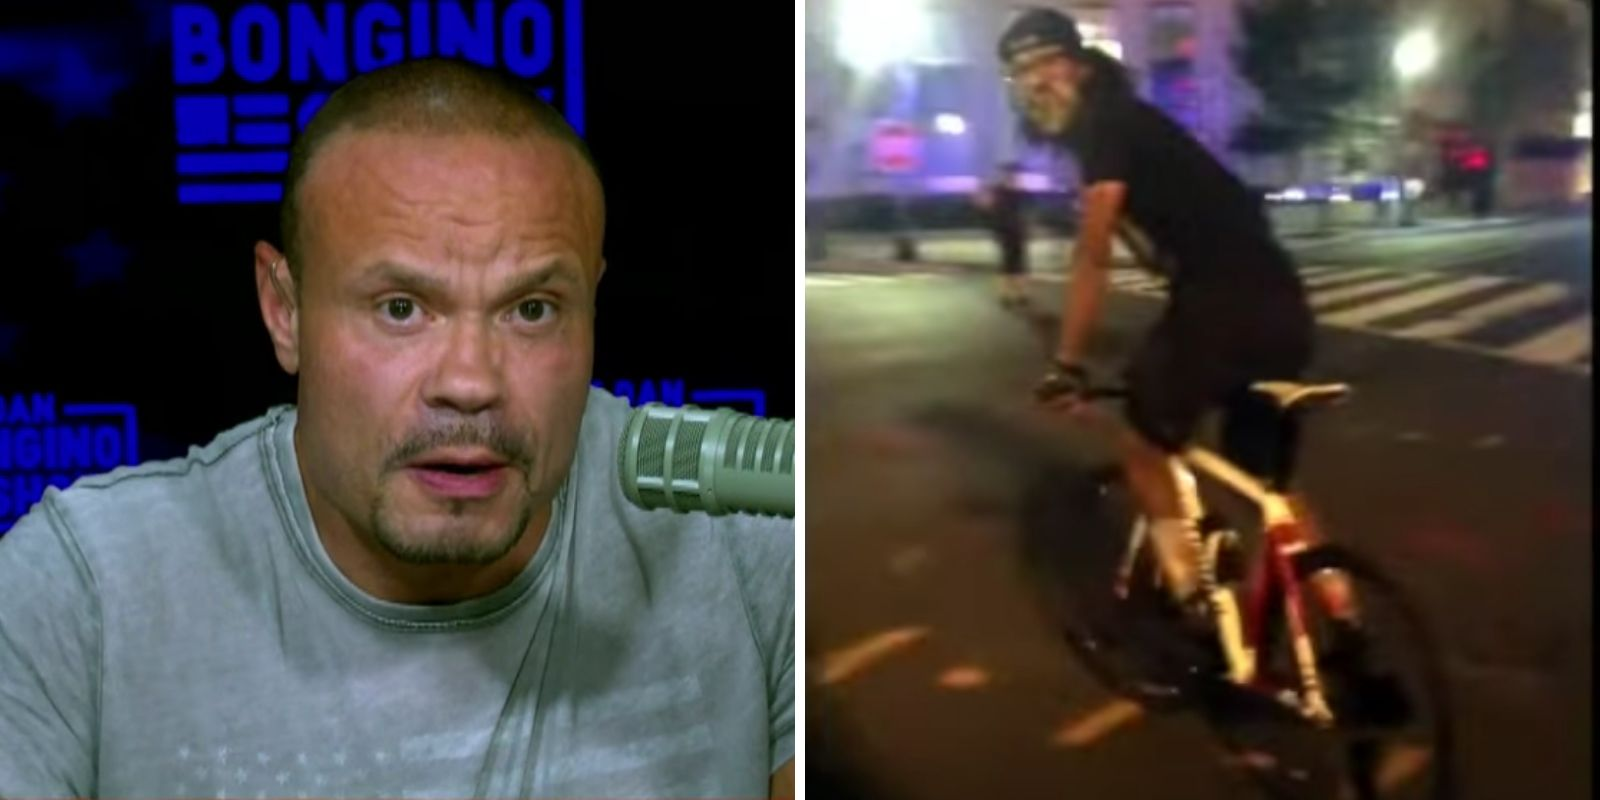 WATCH: Dan Bongino and wife attacked by activist mob after RNC